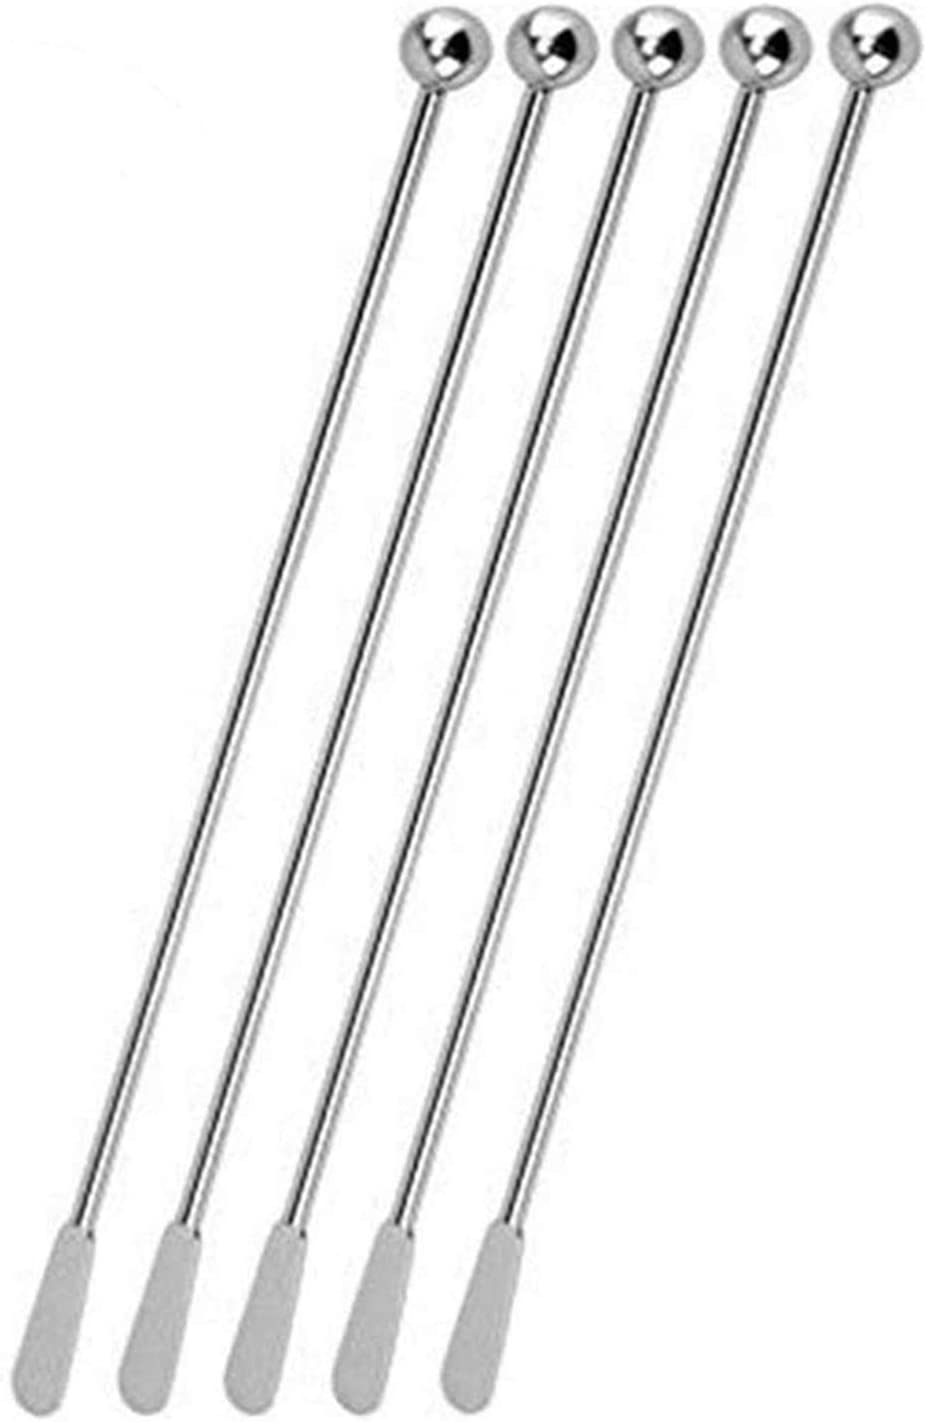   Jsdoin Stainless Steel Coffee Beverage Stirrers Stir Cocktail Drink Swizzle Stick with Small Rectangular Paddles (5 silver): Swizzle Sticks